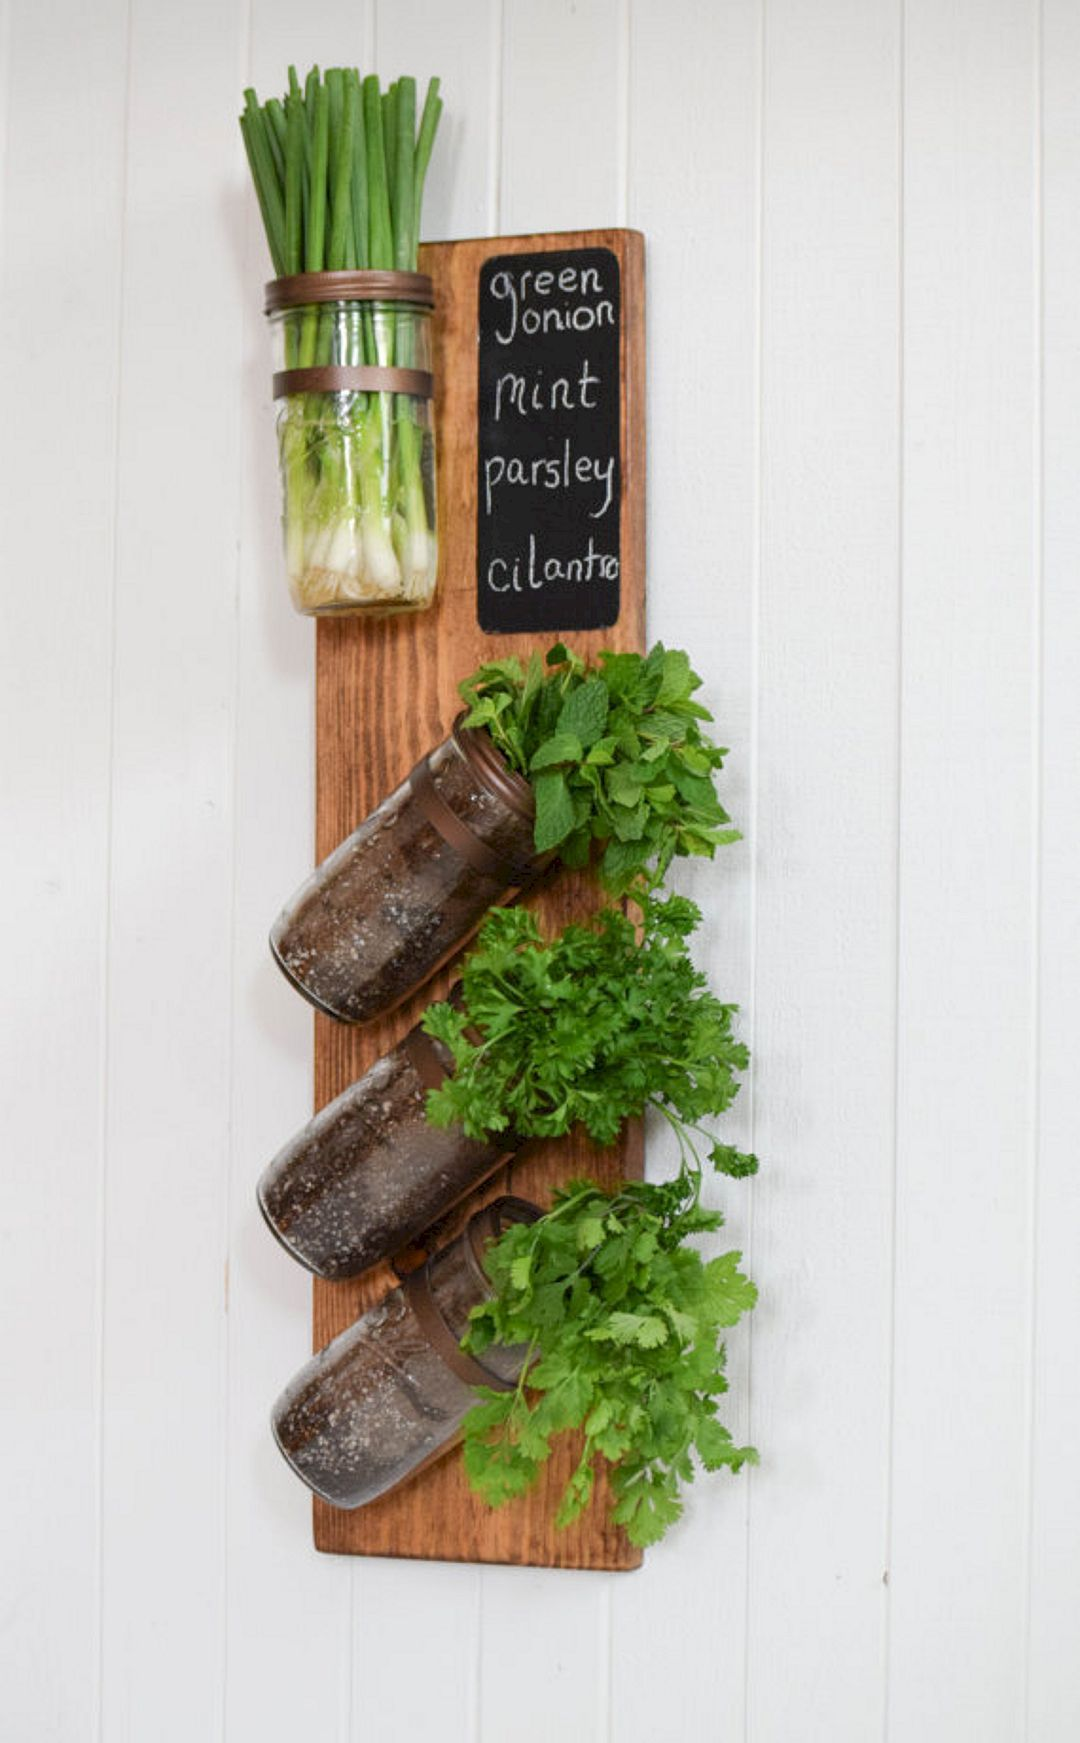 Best Indoor Herb Garden Ideas for Your Small Home and Apartment ...